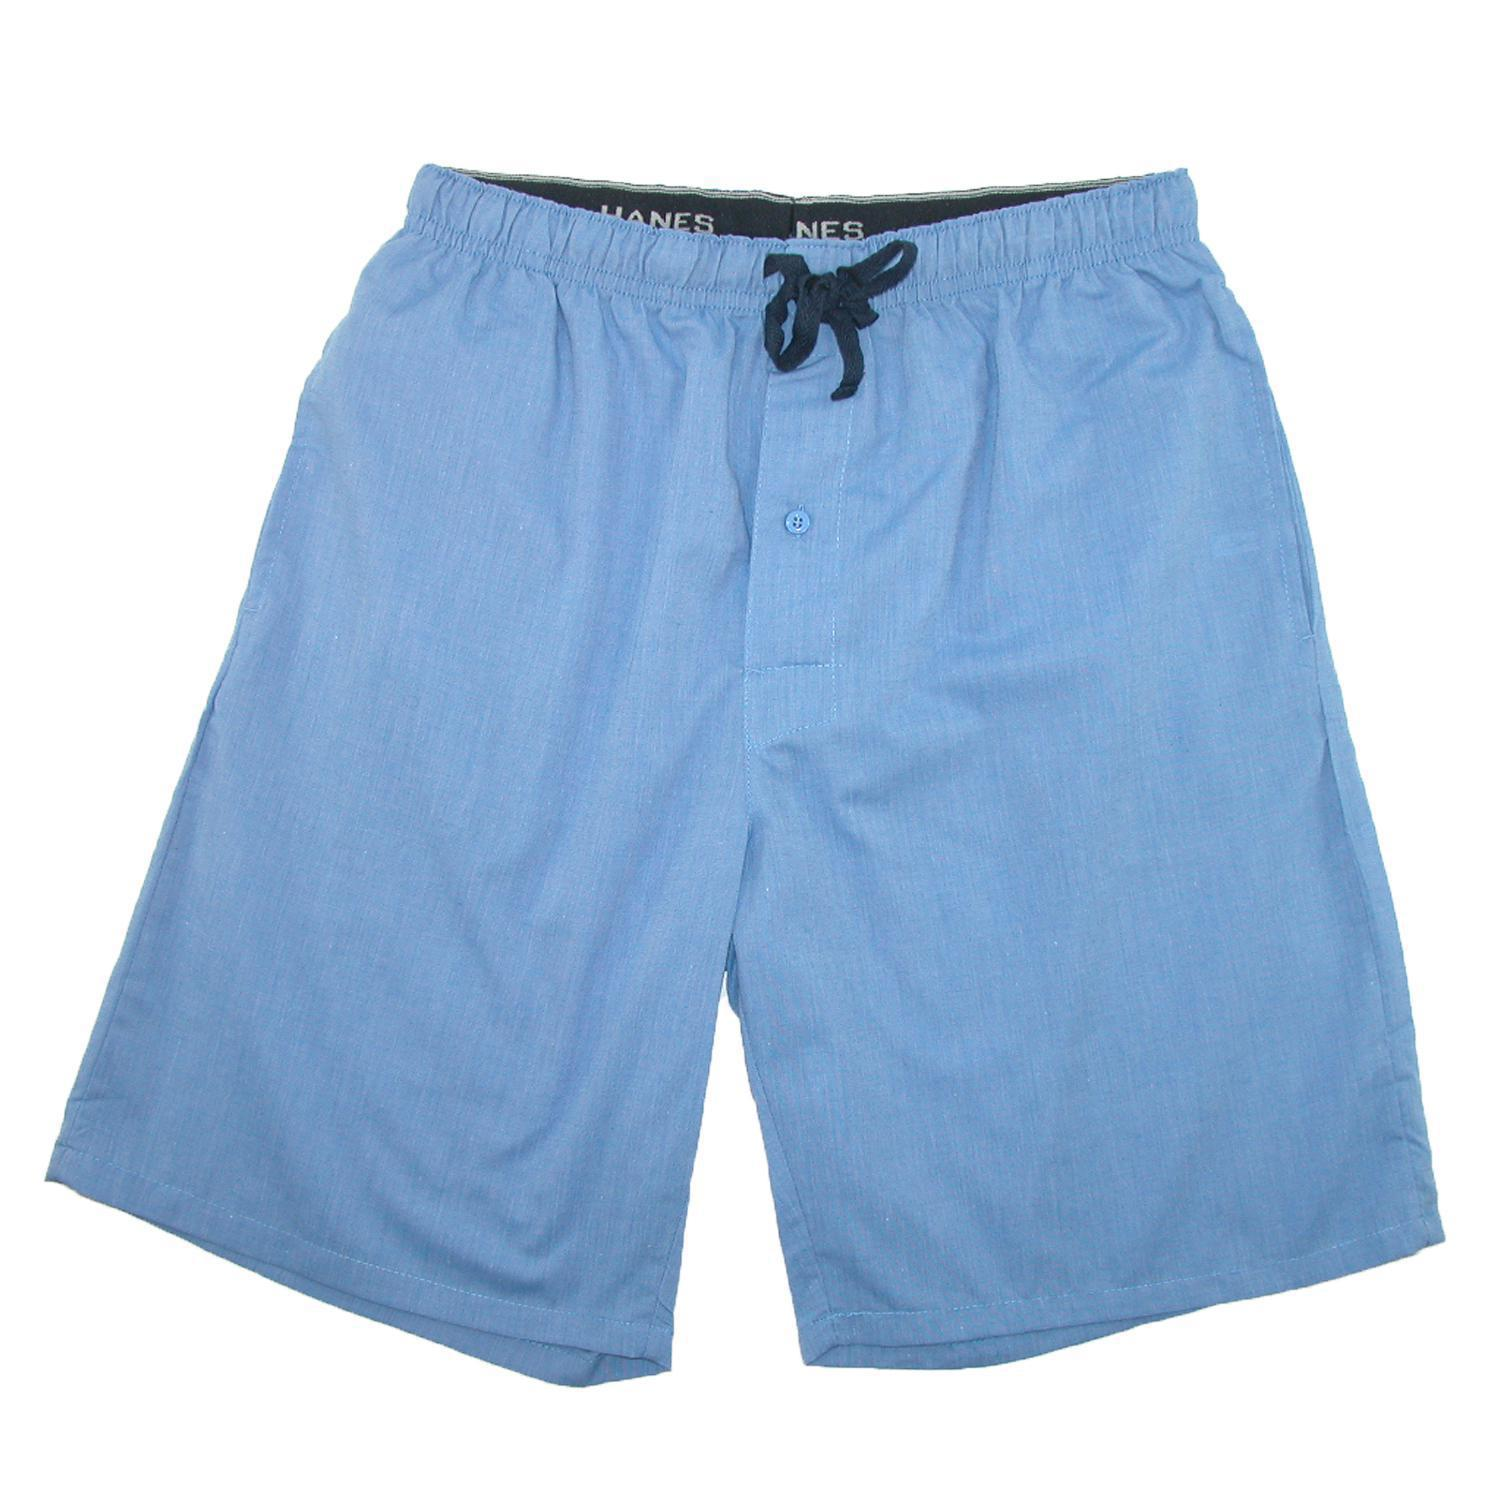 Hanes Men's Cotton Madras Drawstring Sleep Pajama Shorts - Walmart.com